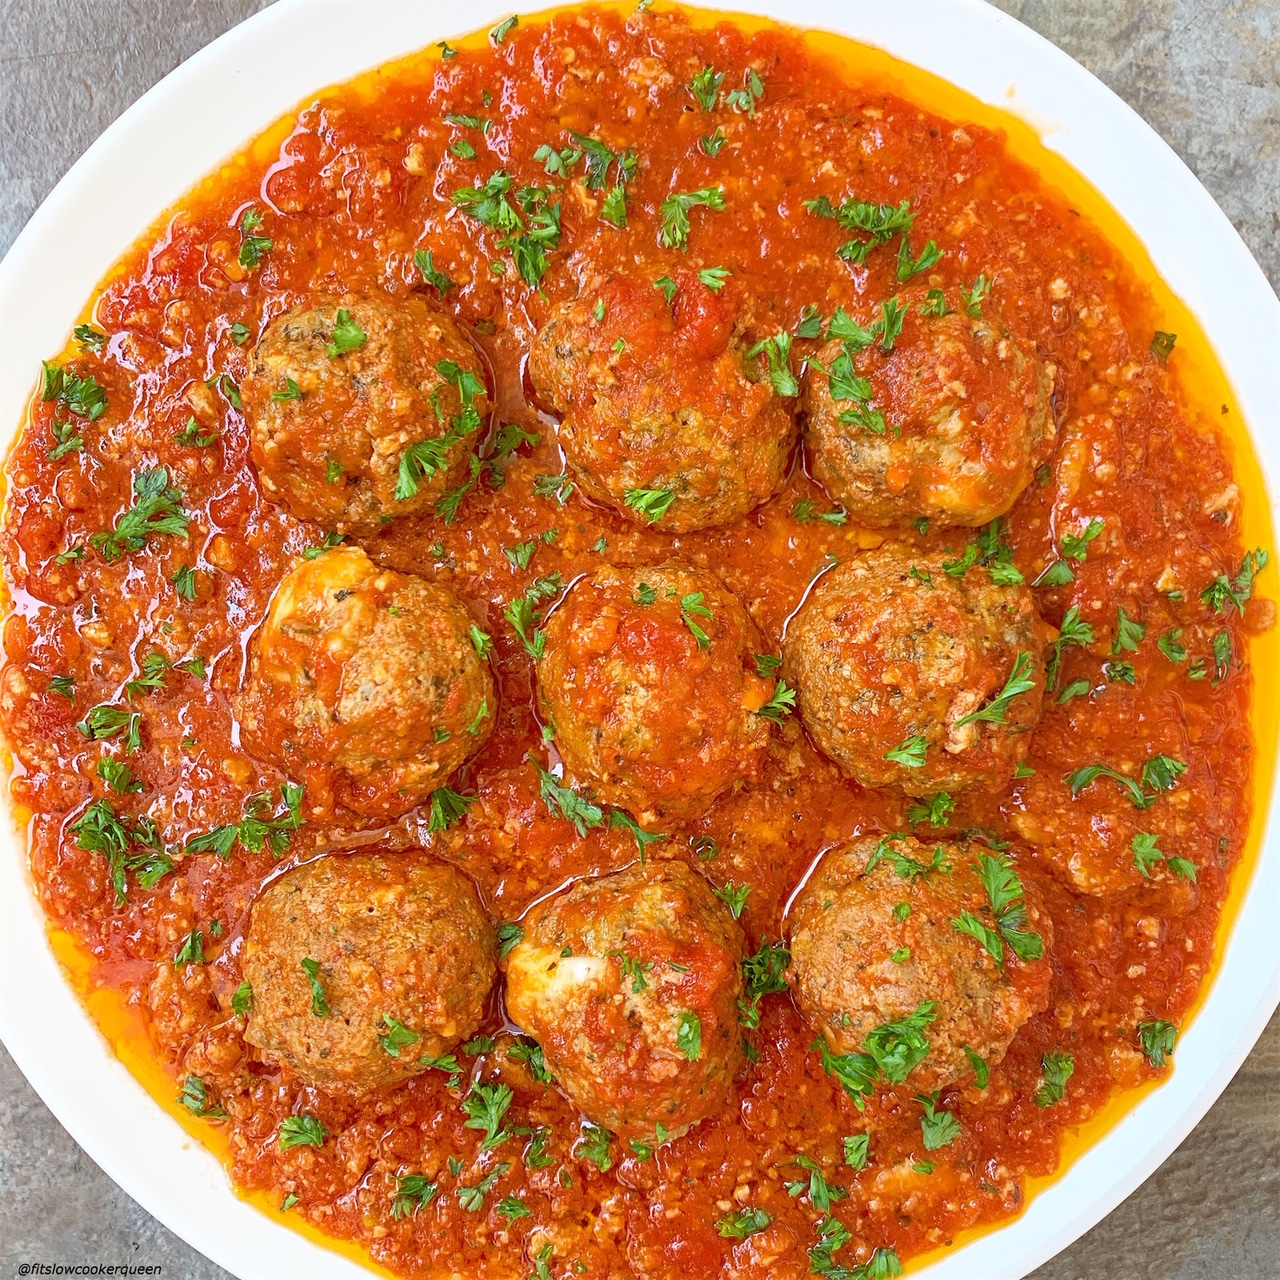 plated pic of meatballs from slow cooker instant pot mozzarella stuffed meatballs